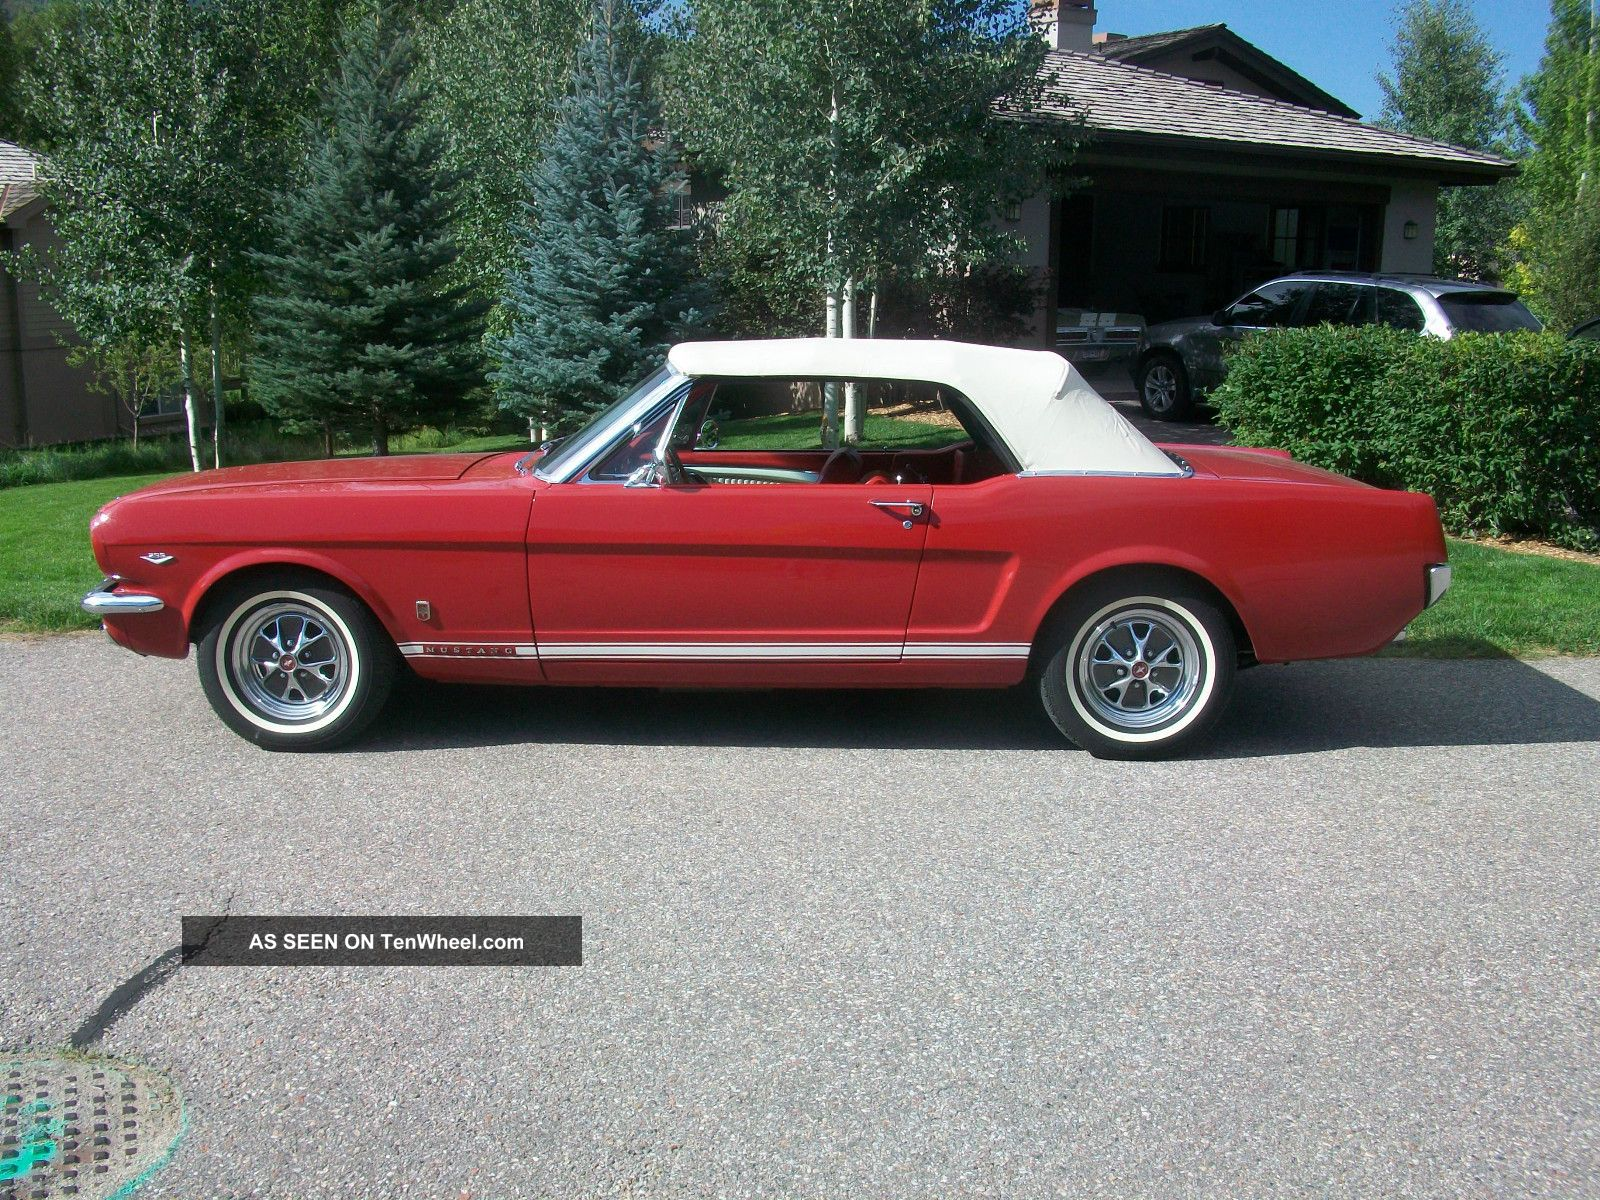 1965 Ford Mustang ' A ' Code Convertible Mustang photo